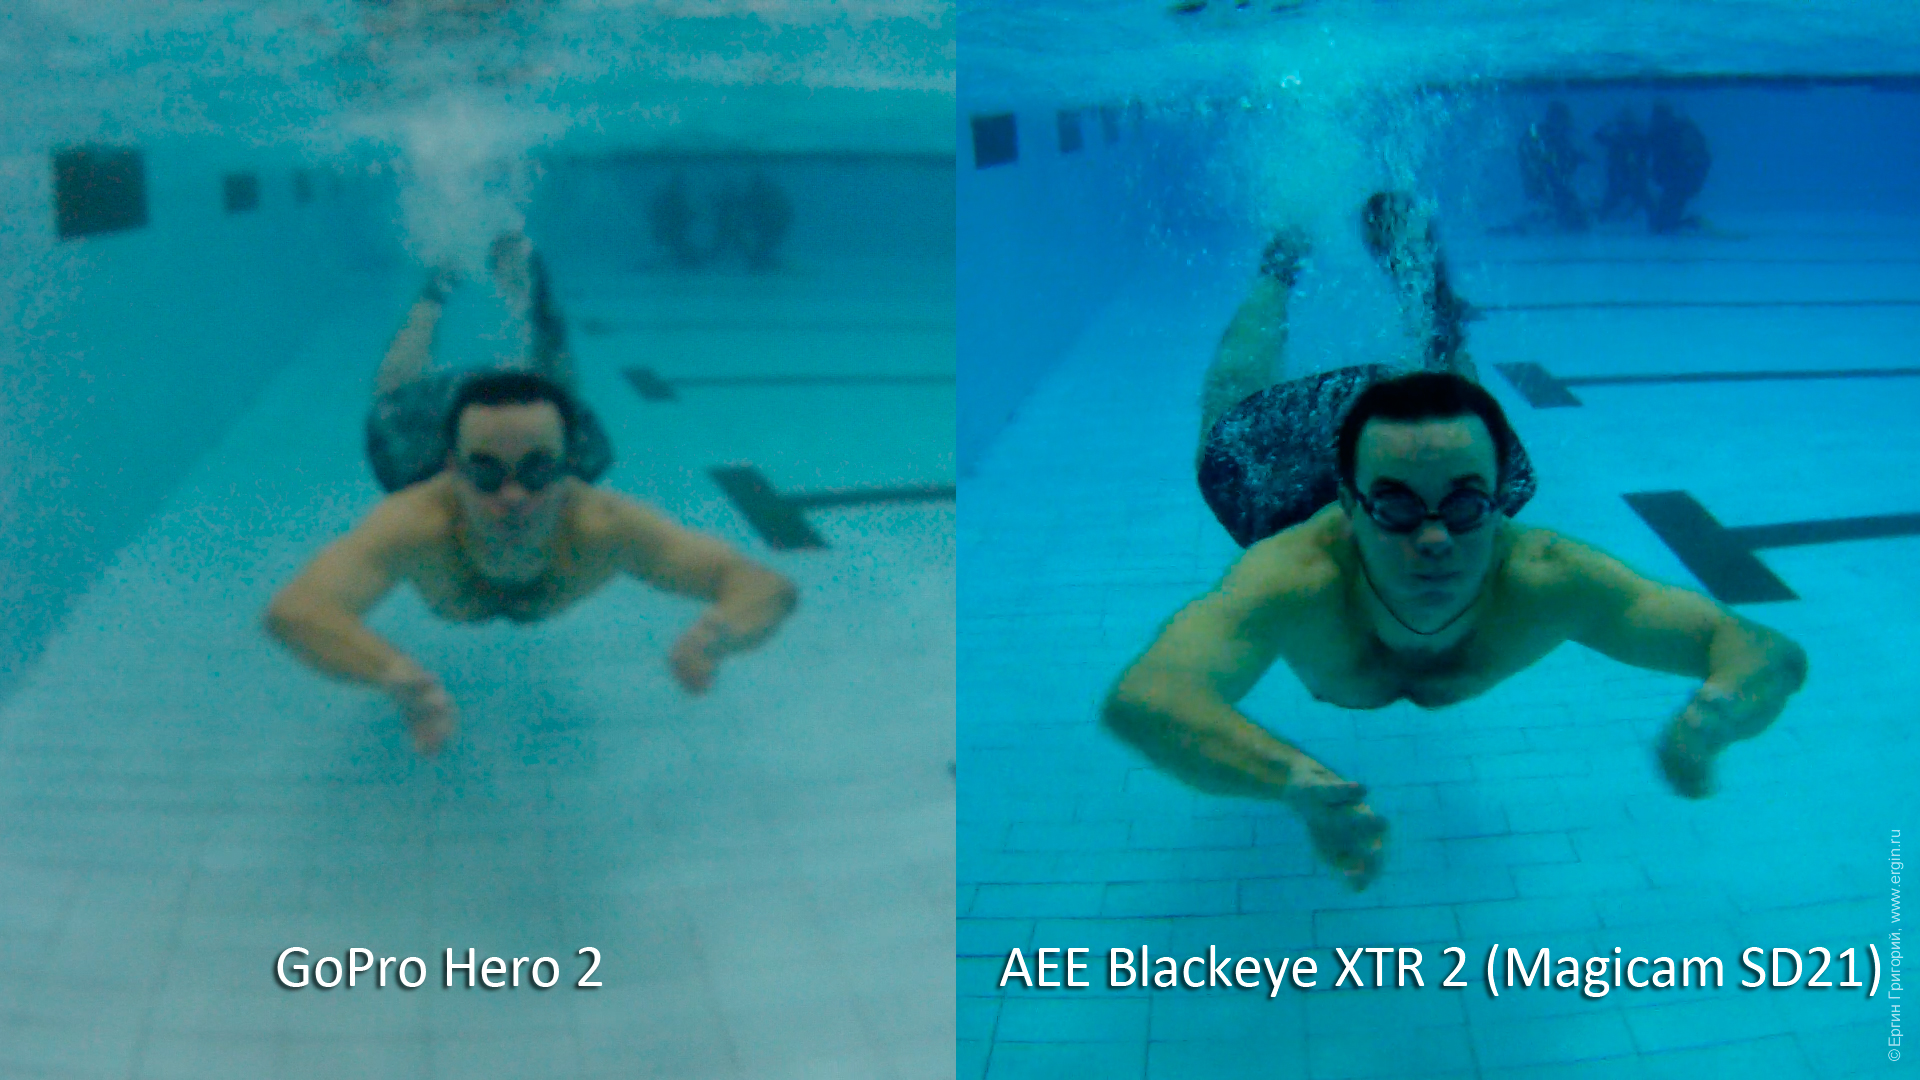 AEE Blackeye XTR 2 (AEE Magicam SD21) против GoPro Hero 2: съемка под водой